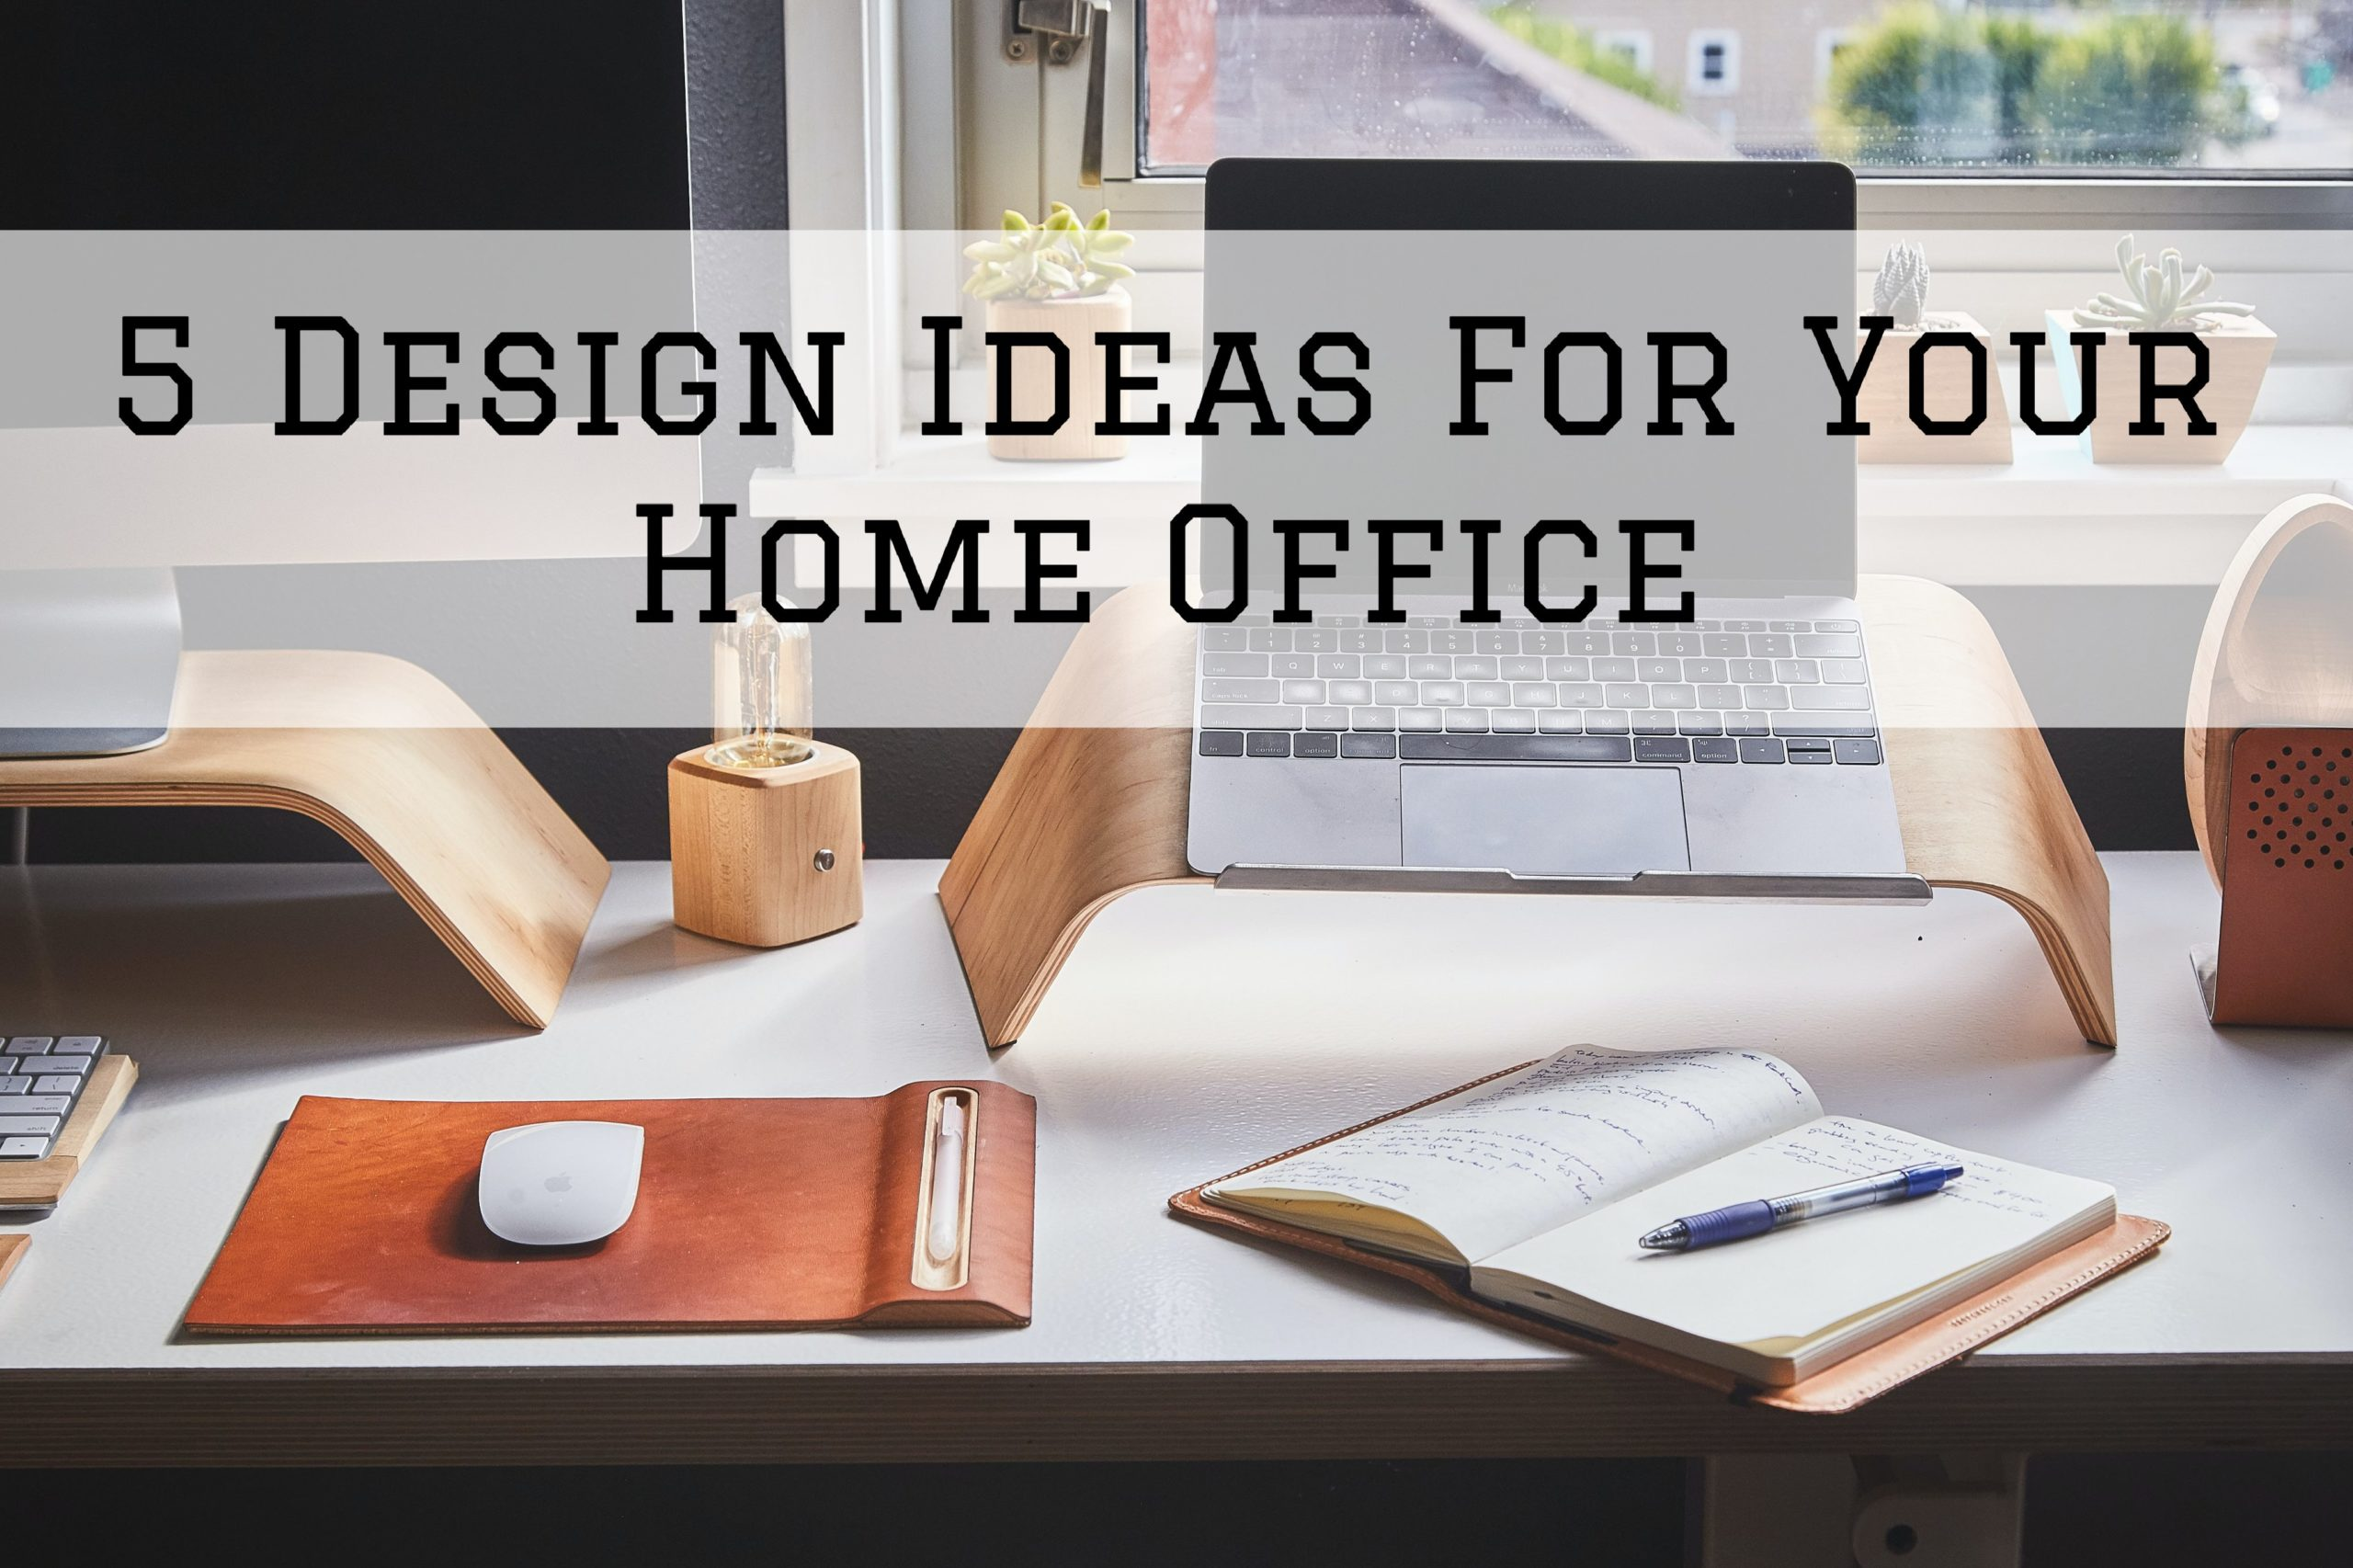 5 Design Ideas For Your Home Office in Omaha, NE